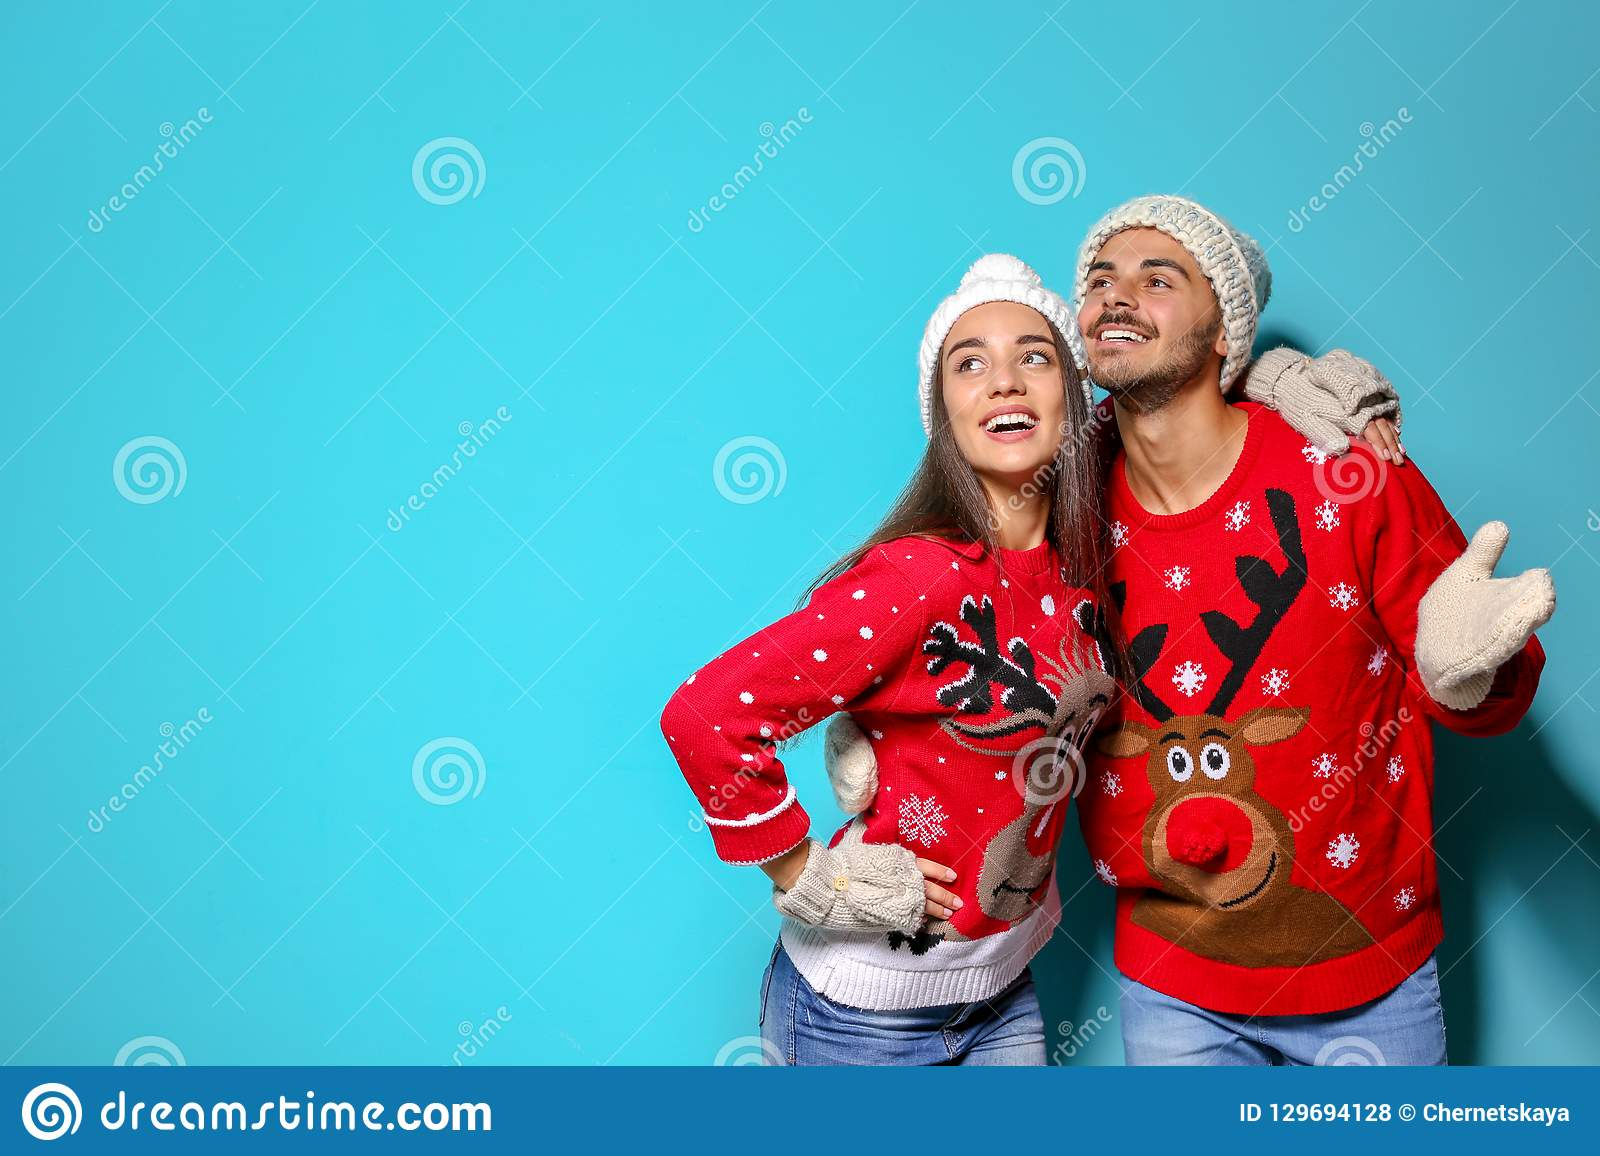 Young couple in Christmas sweaters and knitted hats on color background.